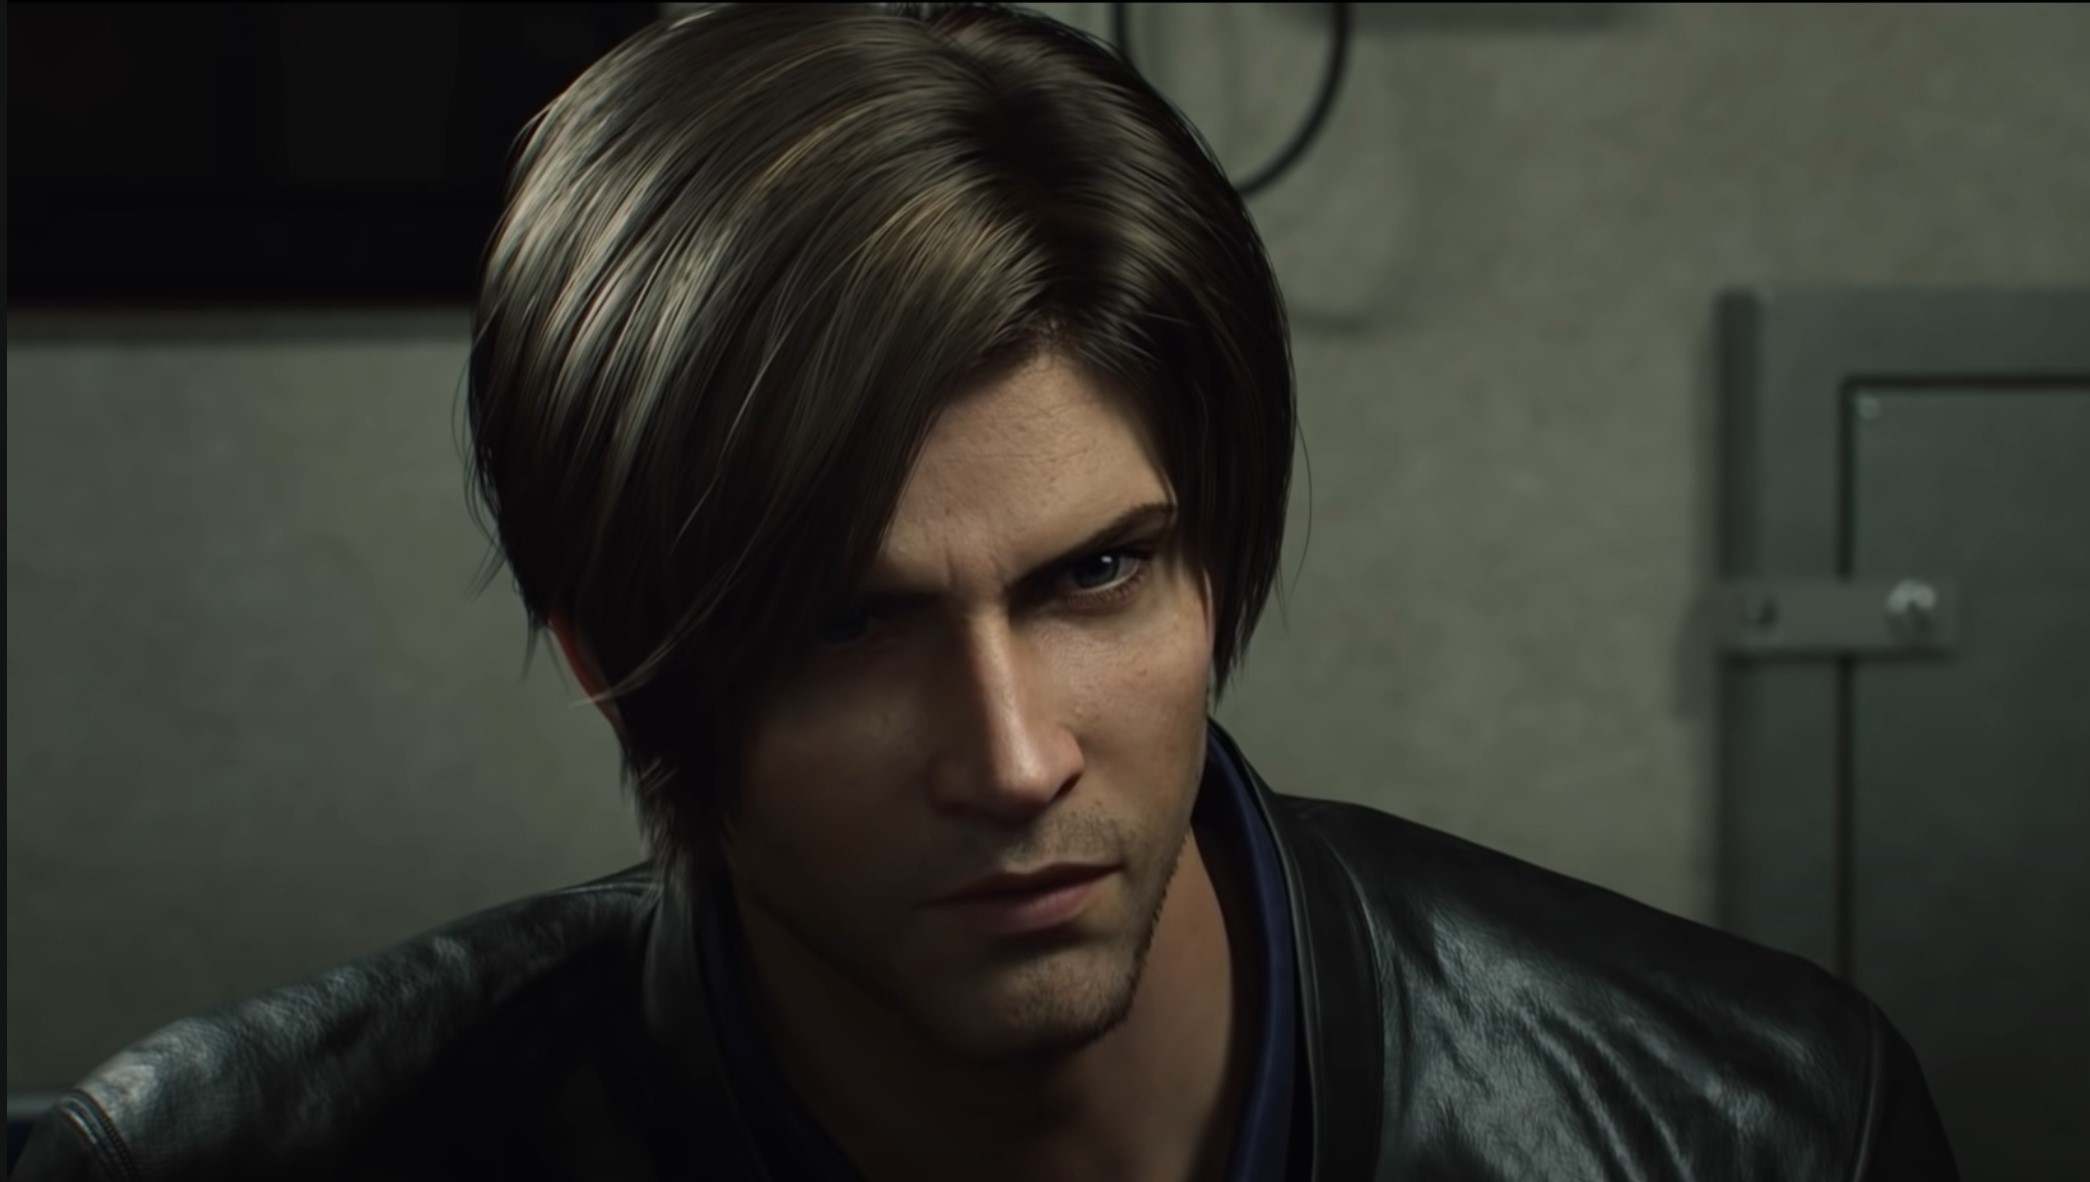 RESIDENT EVIL: Infinite Darkness is Out Now! Watch Online | Will There Be A Season 2?